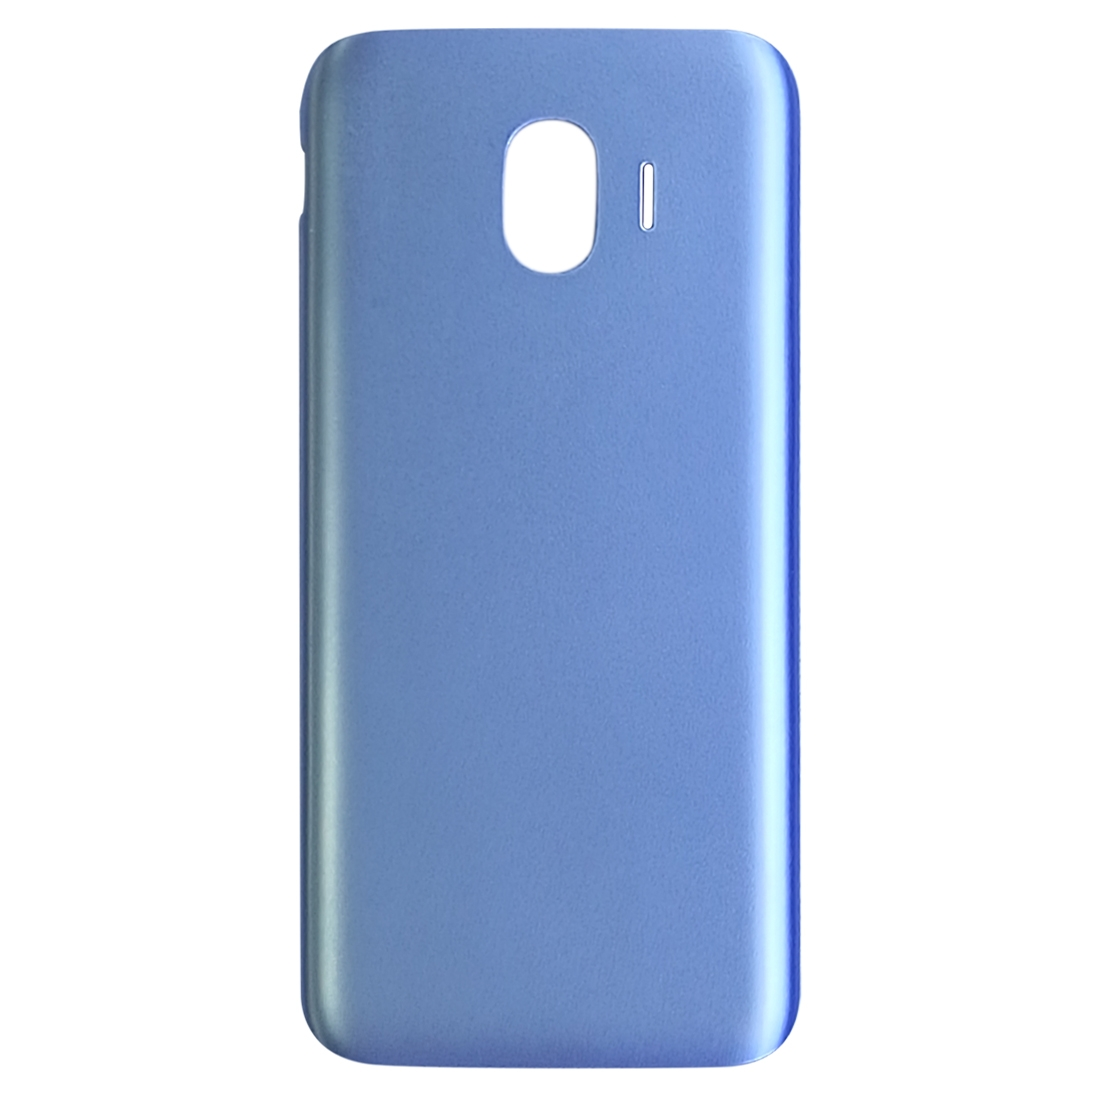 new styles 0c9ac 47a55 Back Cover for Galaxy J2 Pro (2018), J2 (2018), J250F/DS (Blue)